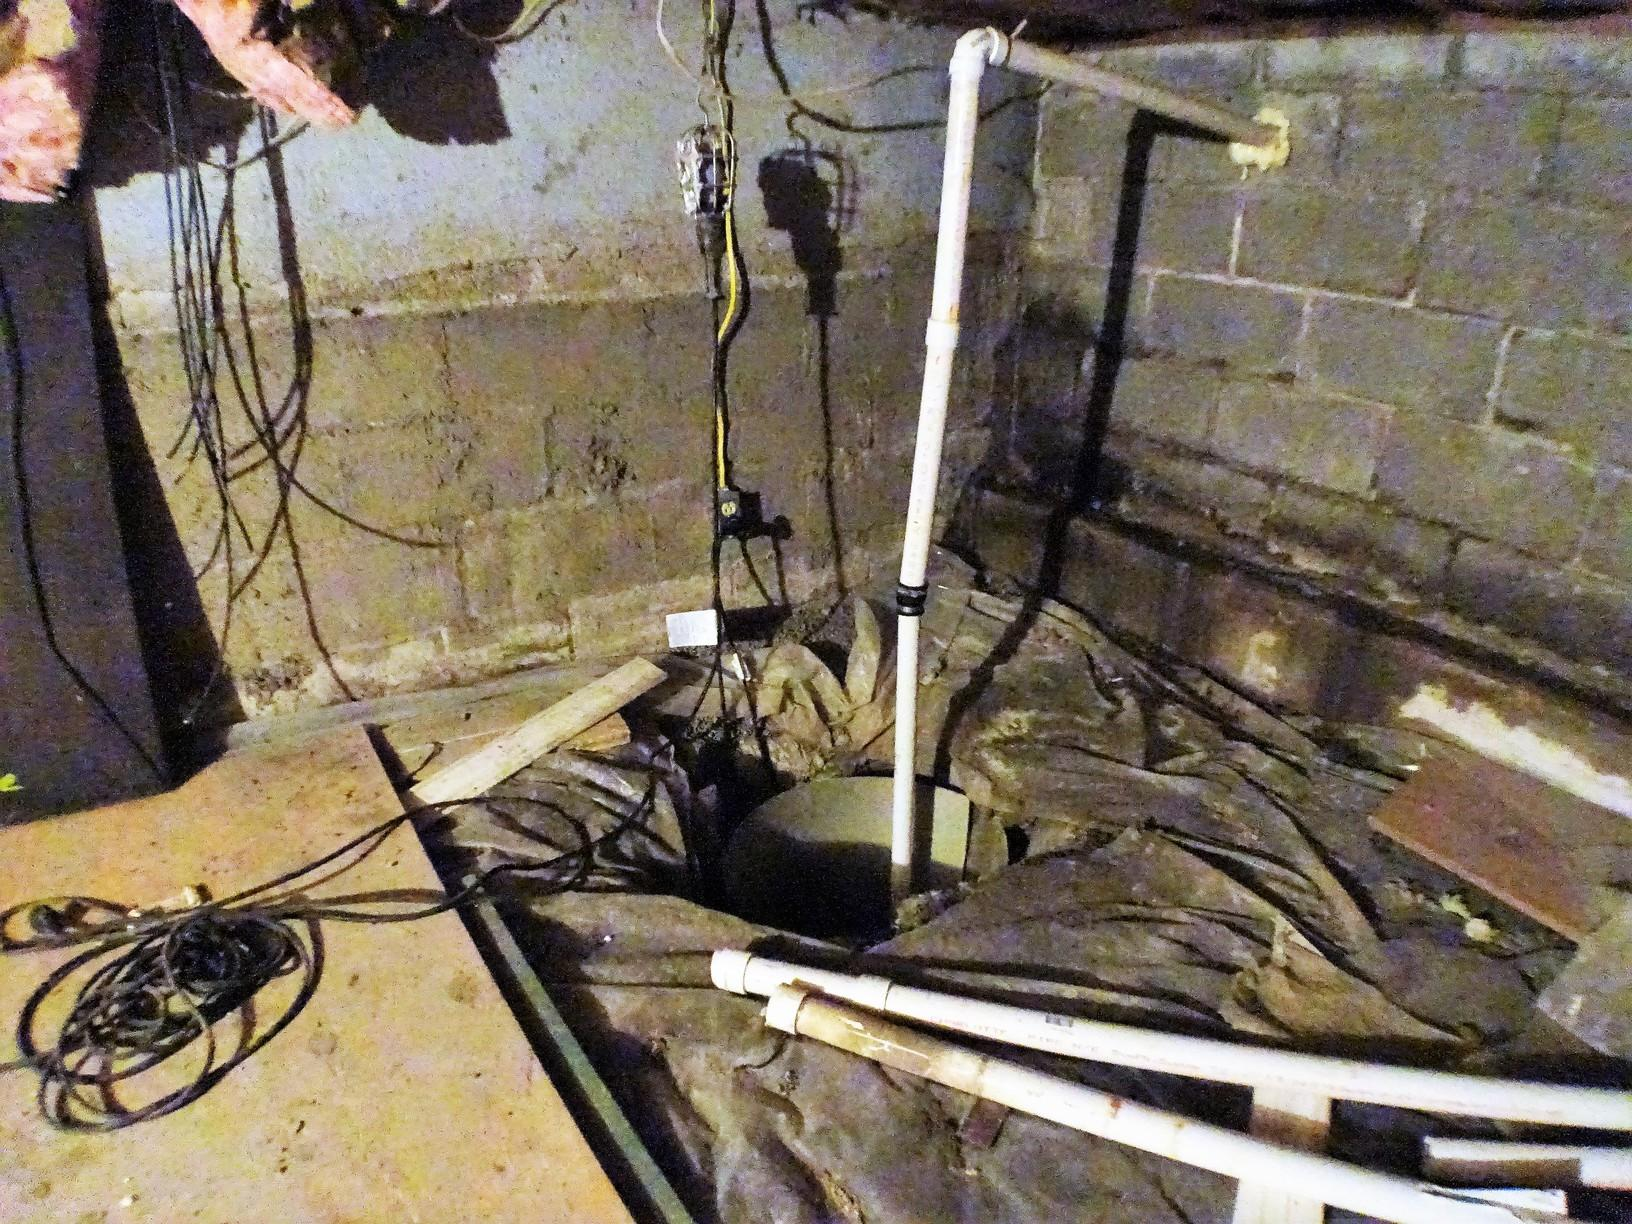 Pittsburgh PA Sump Pump Replaced In Crawl Space - Before Photo